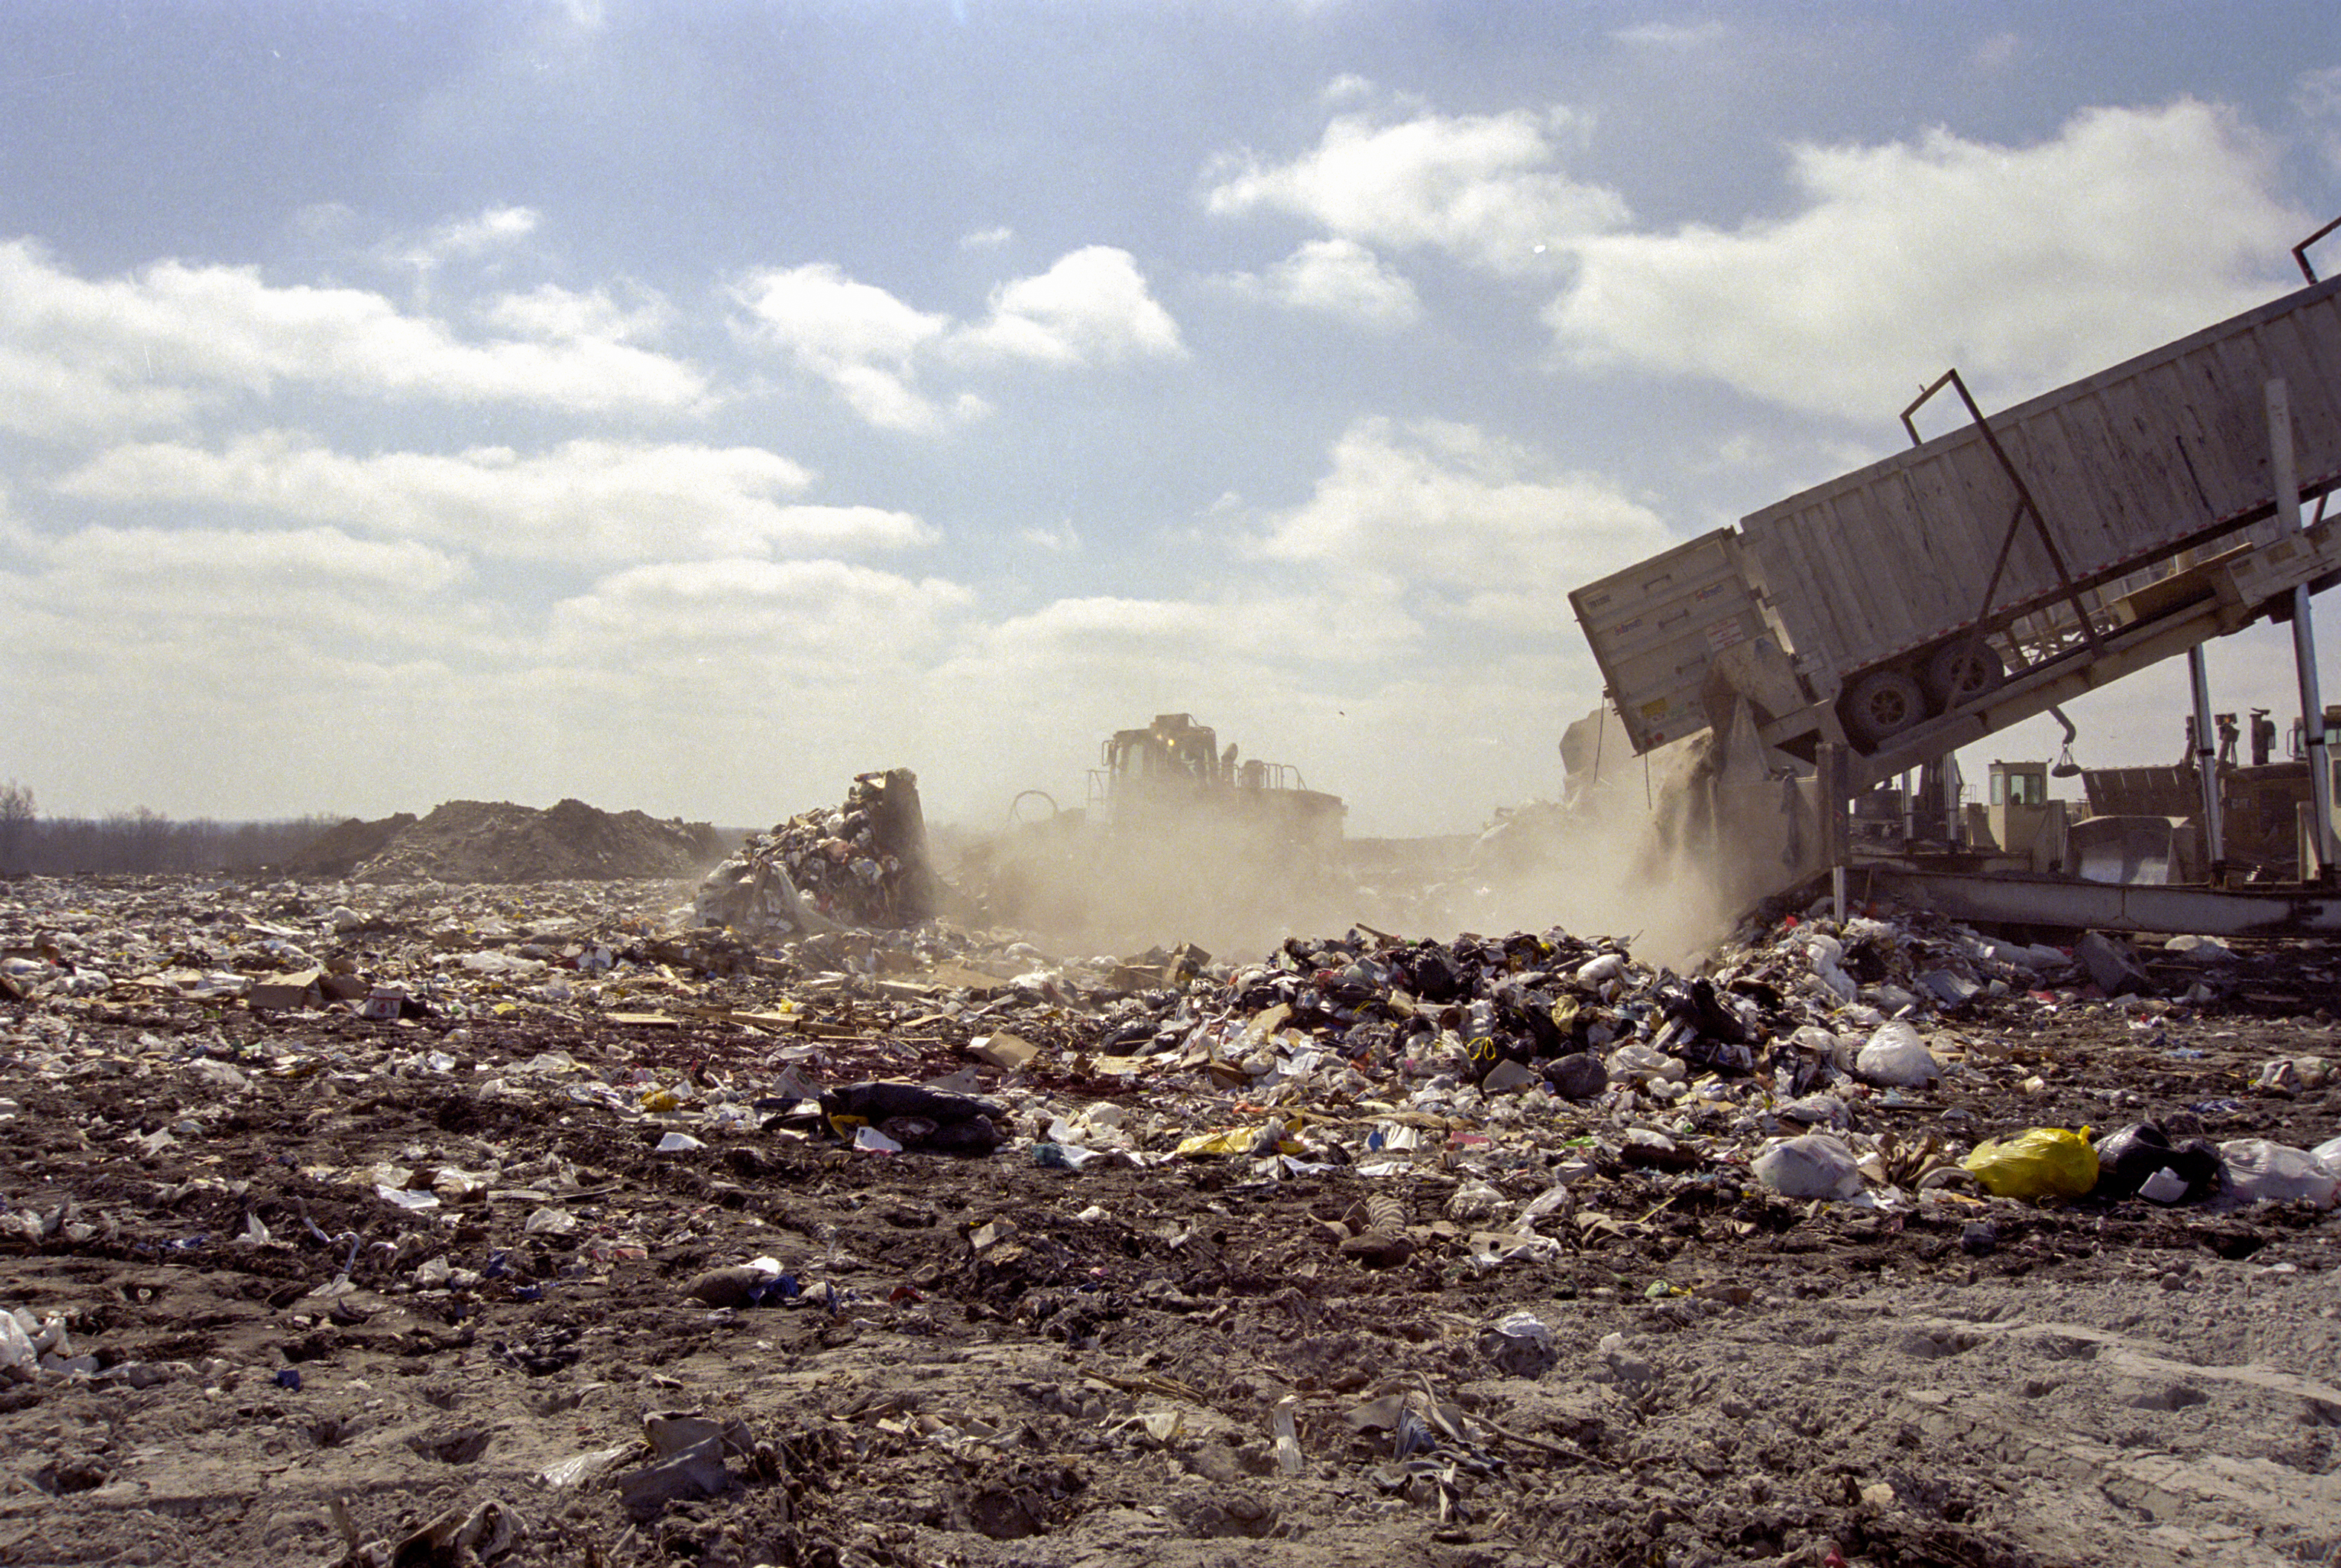 When The Landfill Becomes Full With Trash It Is Then Closed And We Will  Have To Find A New Place For All Of Our Trash To Go